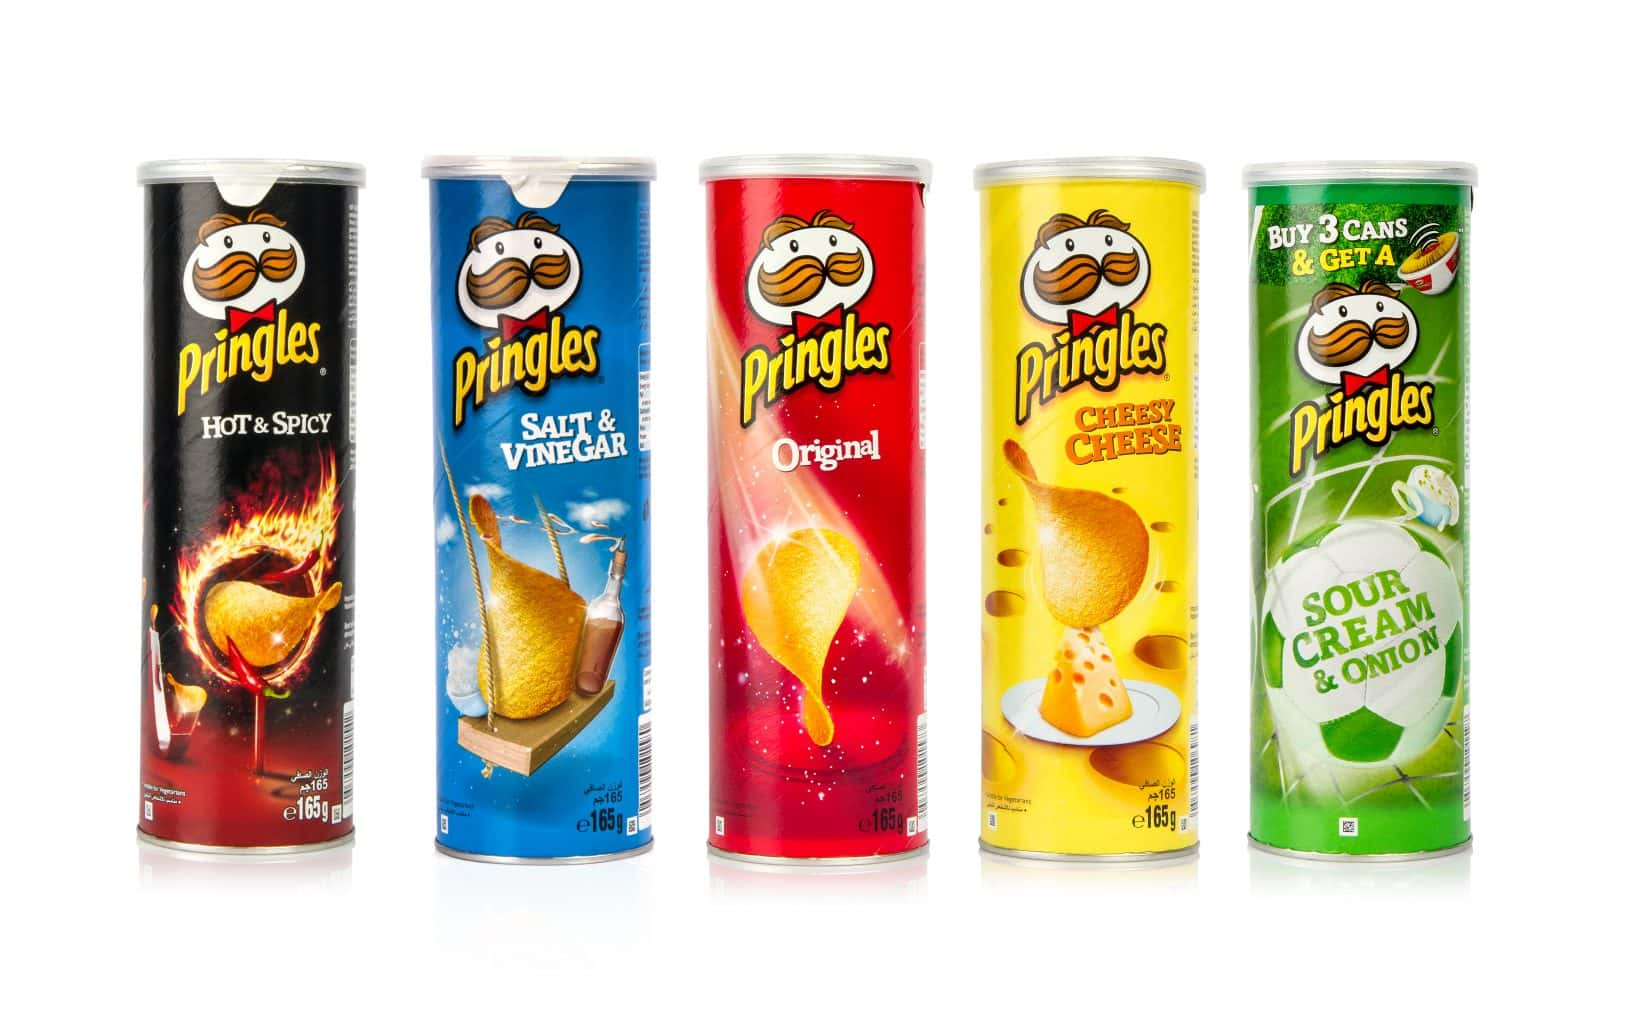 Guess the new flavor of Pringles chips and you could win